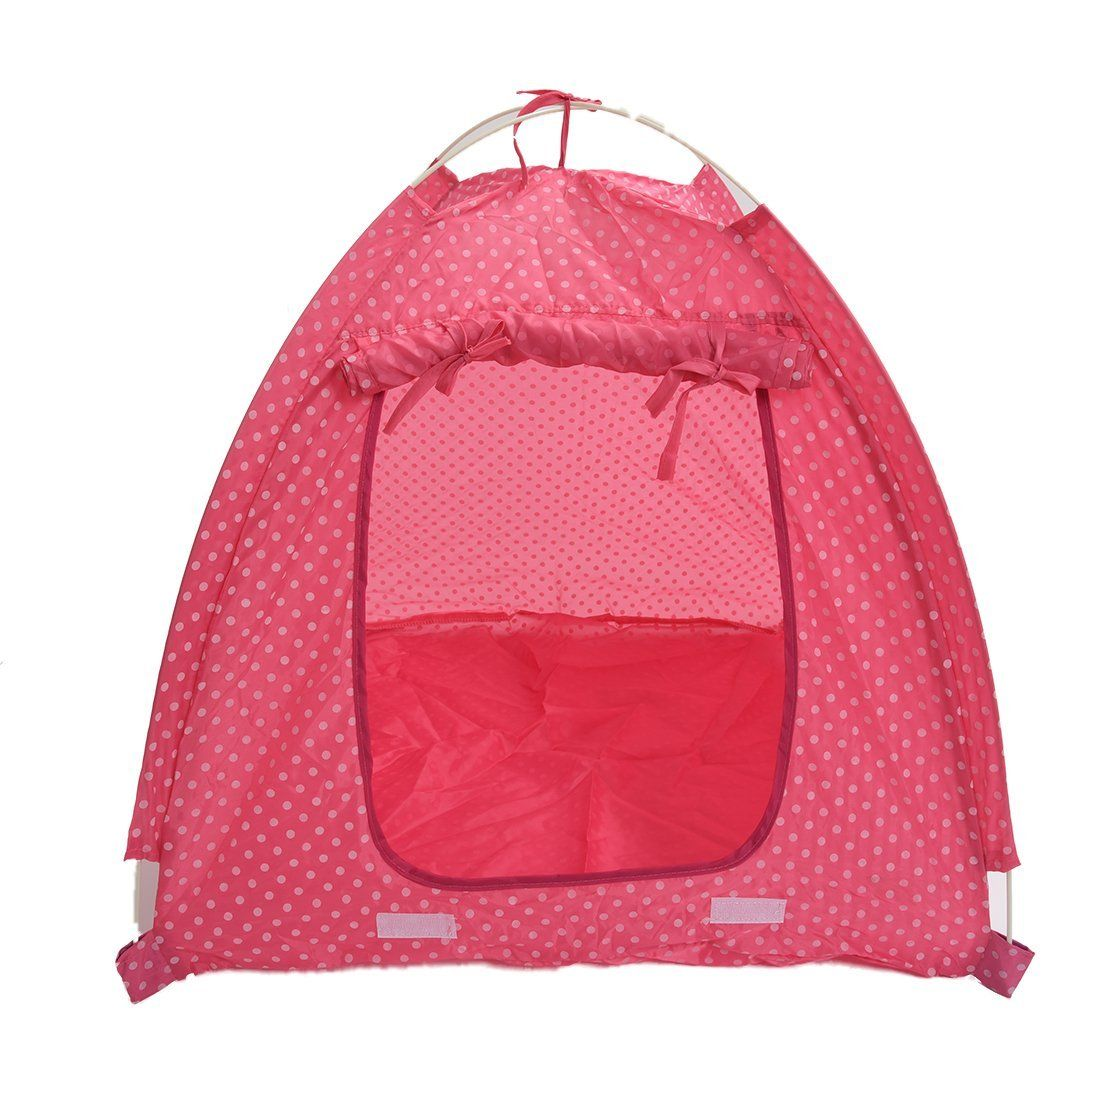 TOOGOO(R) Pet Kitten Cat Puppy Dog Mini Nylon Camp Tent Bed Play House pink-L * Want additional info? Click on the image. (This is an affiliate link and I receive a commission for the sales)